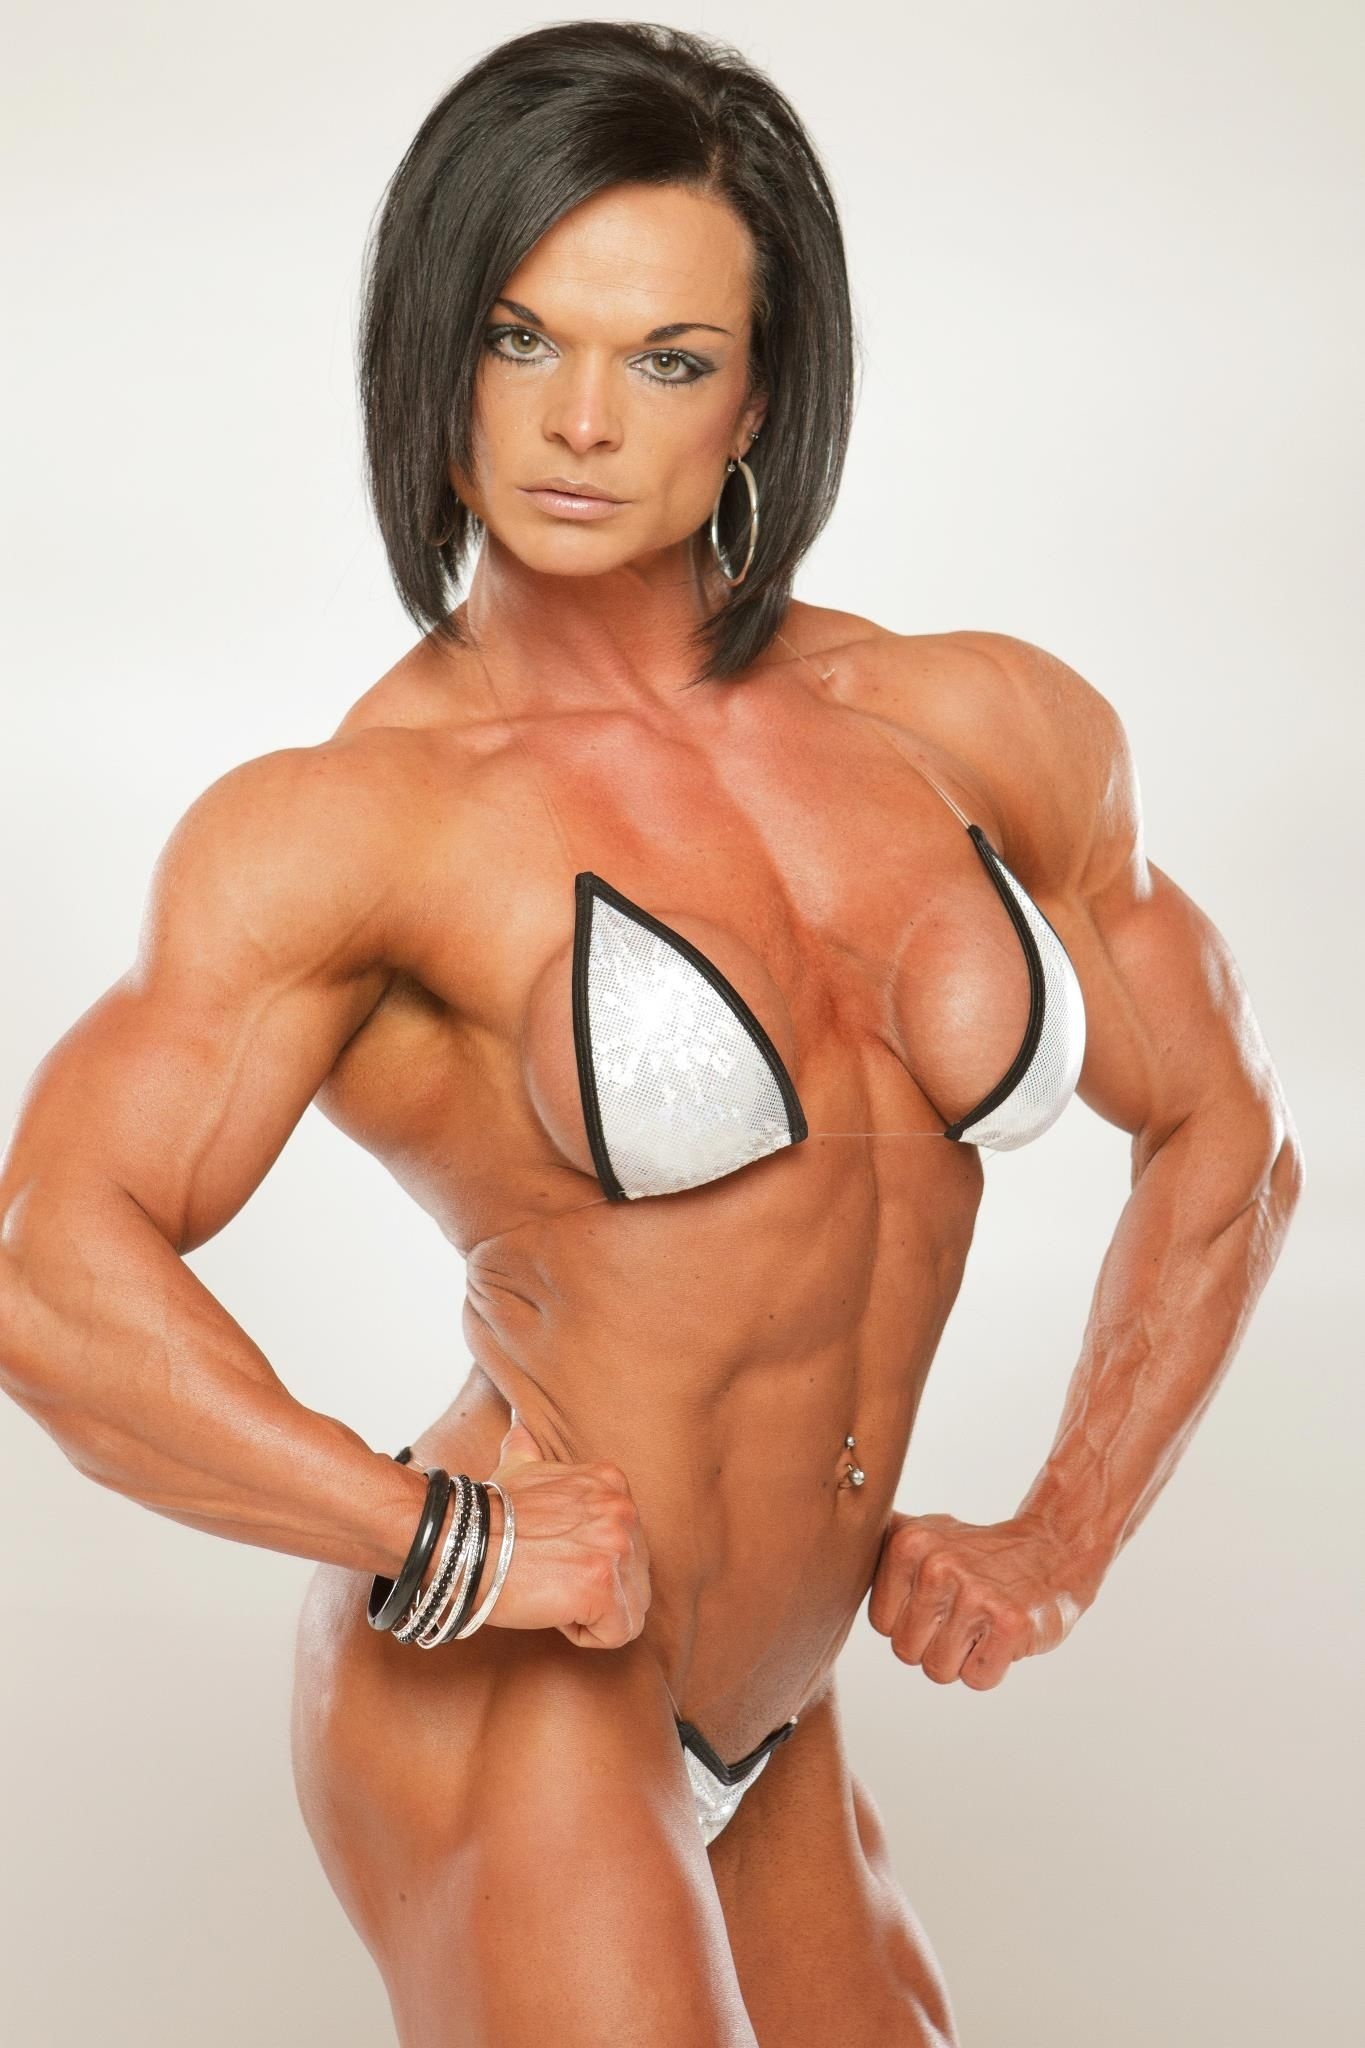 Sexy Muscle Girls Real Female Bodybuilders The Biggest -7977